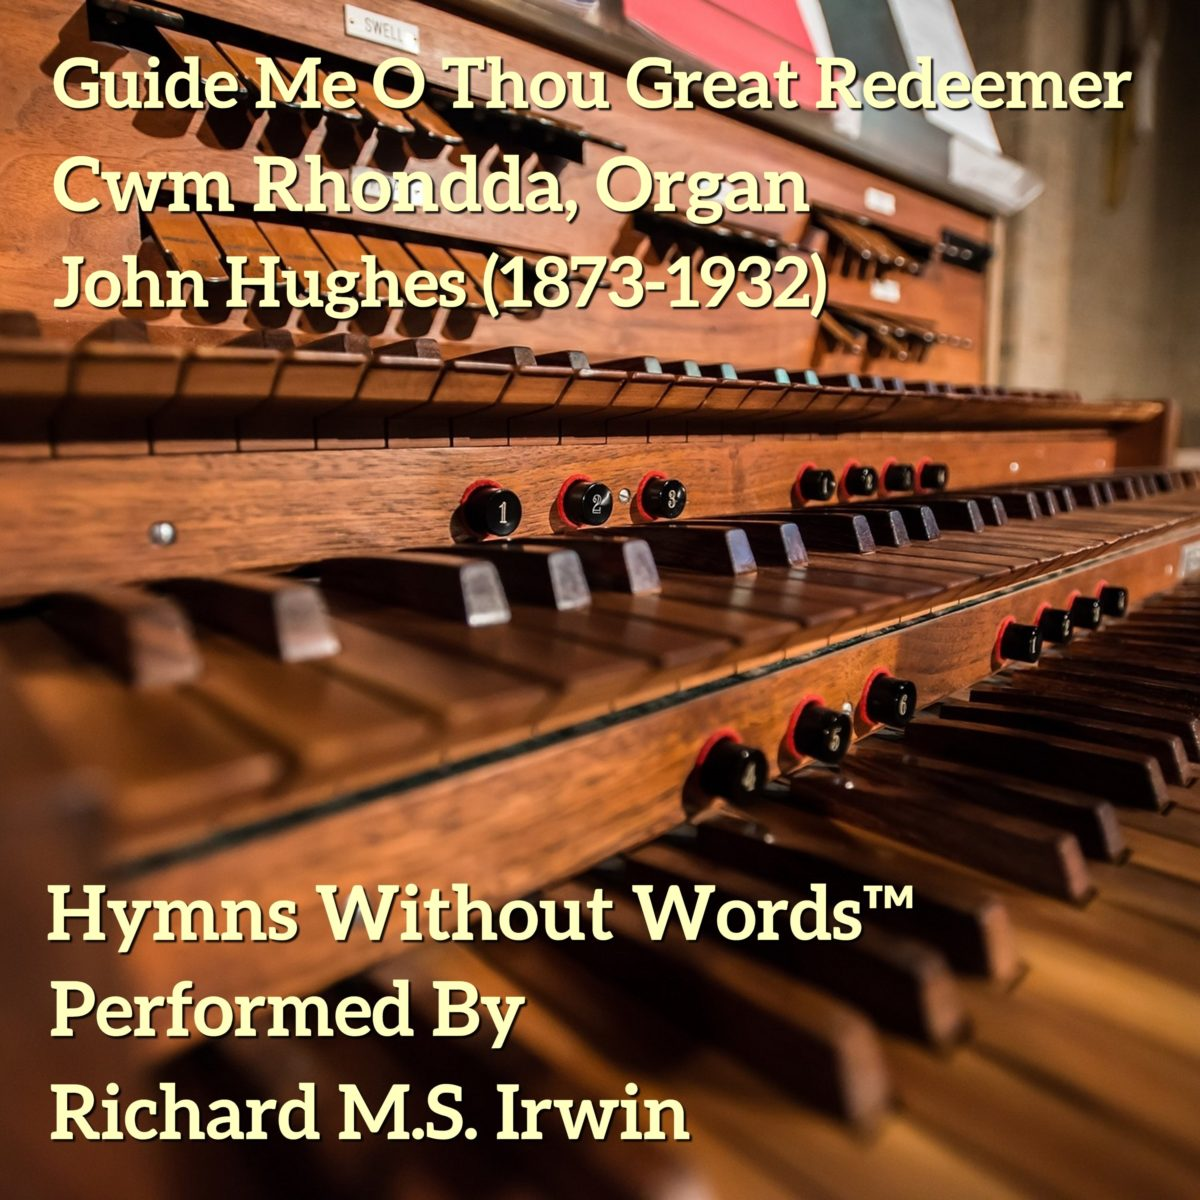 Guide Me O Thou Great Redeemer (Cwm Rhondda – 3 Verses) – Organ